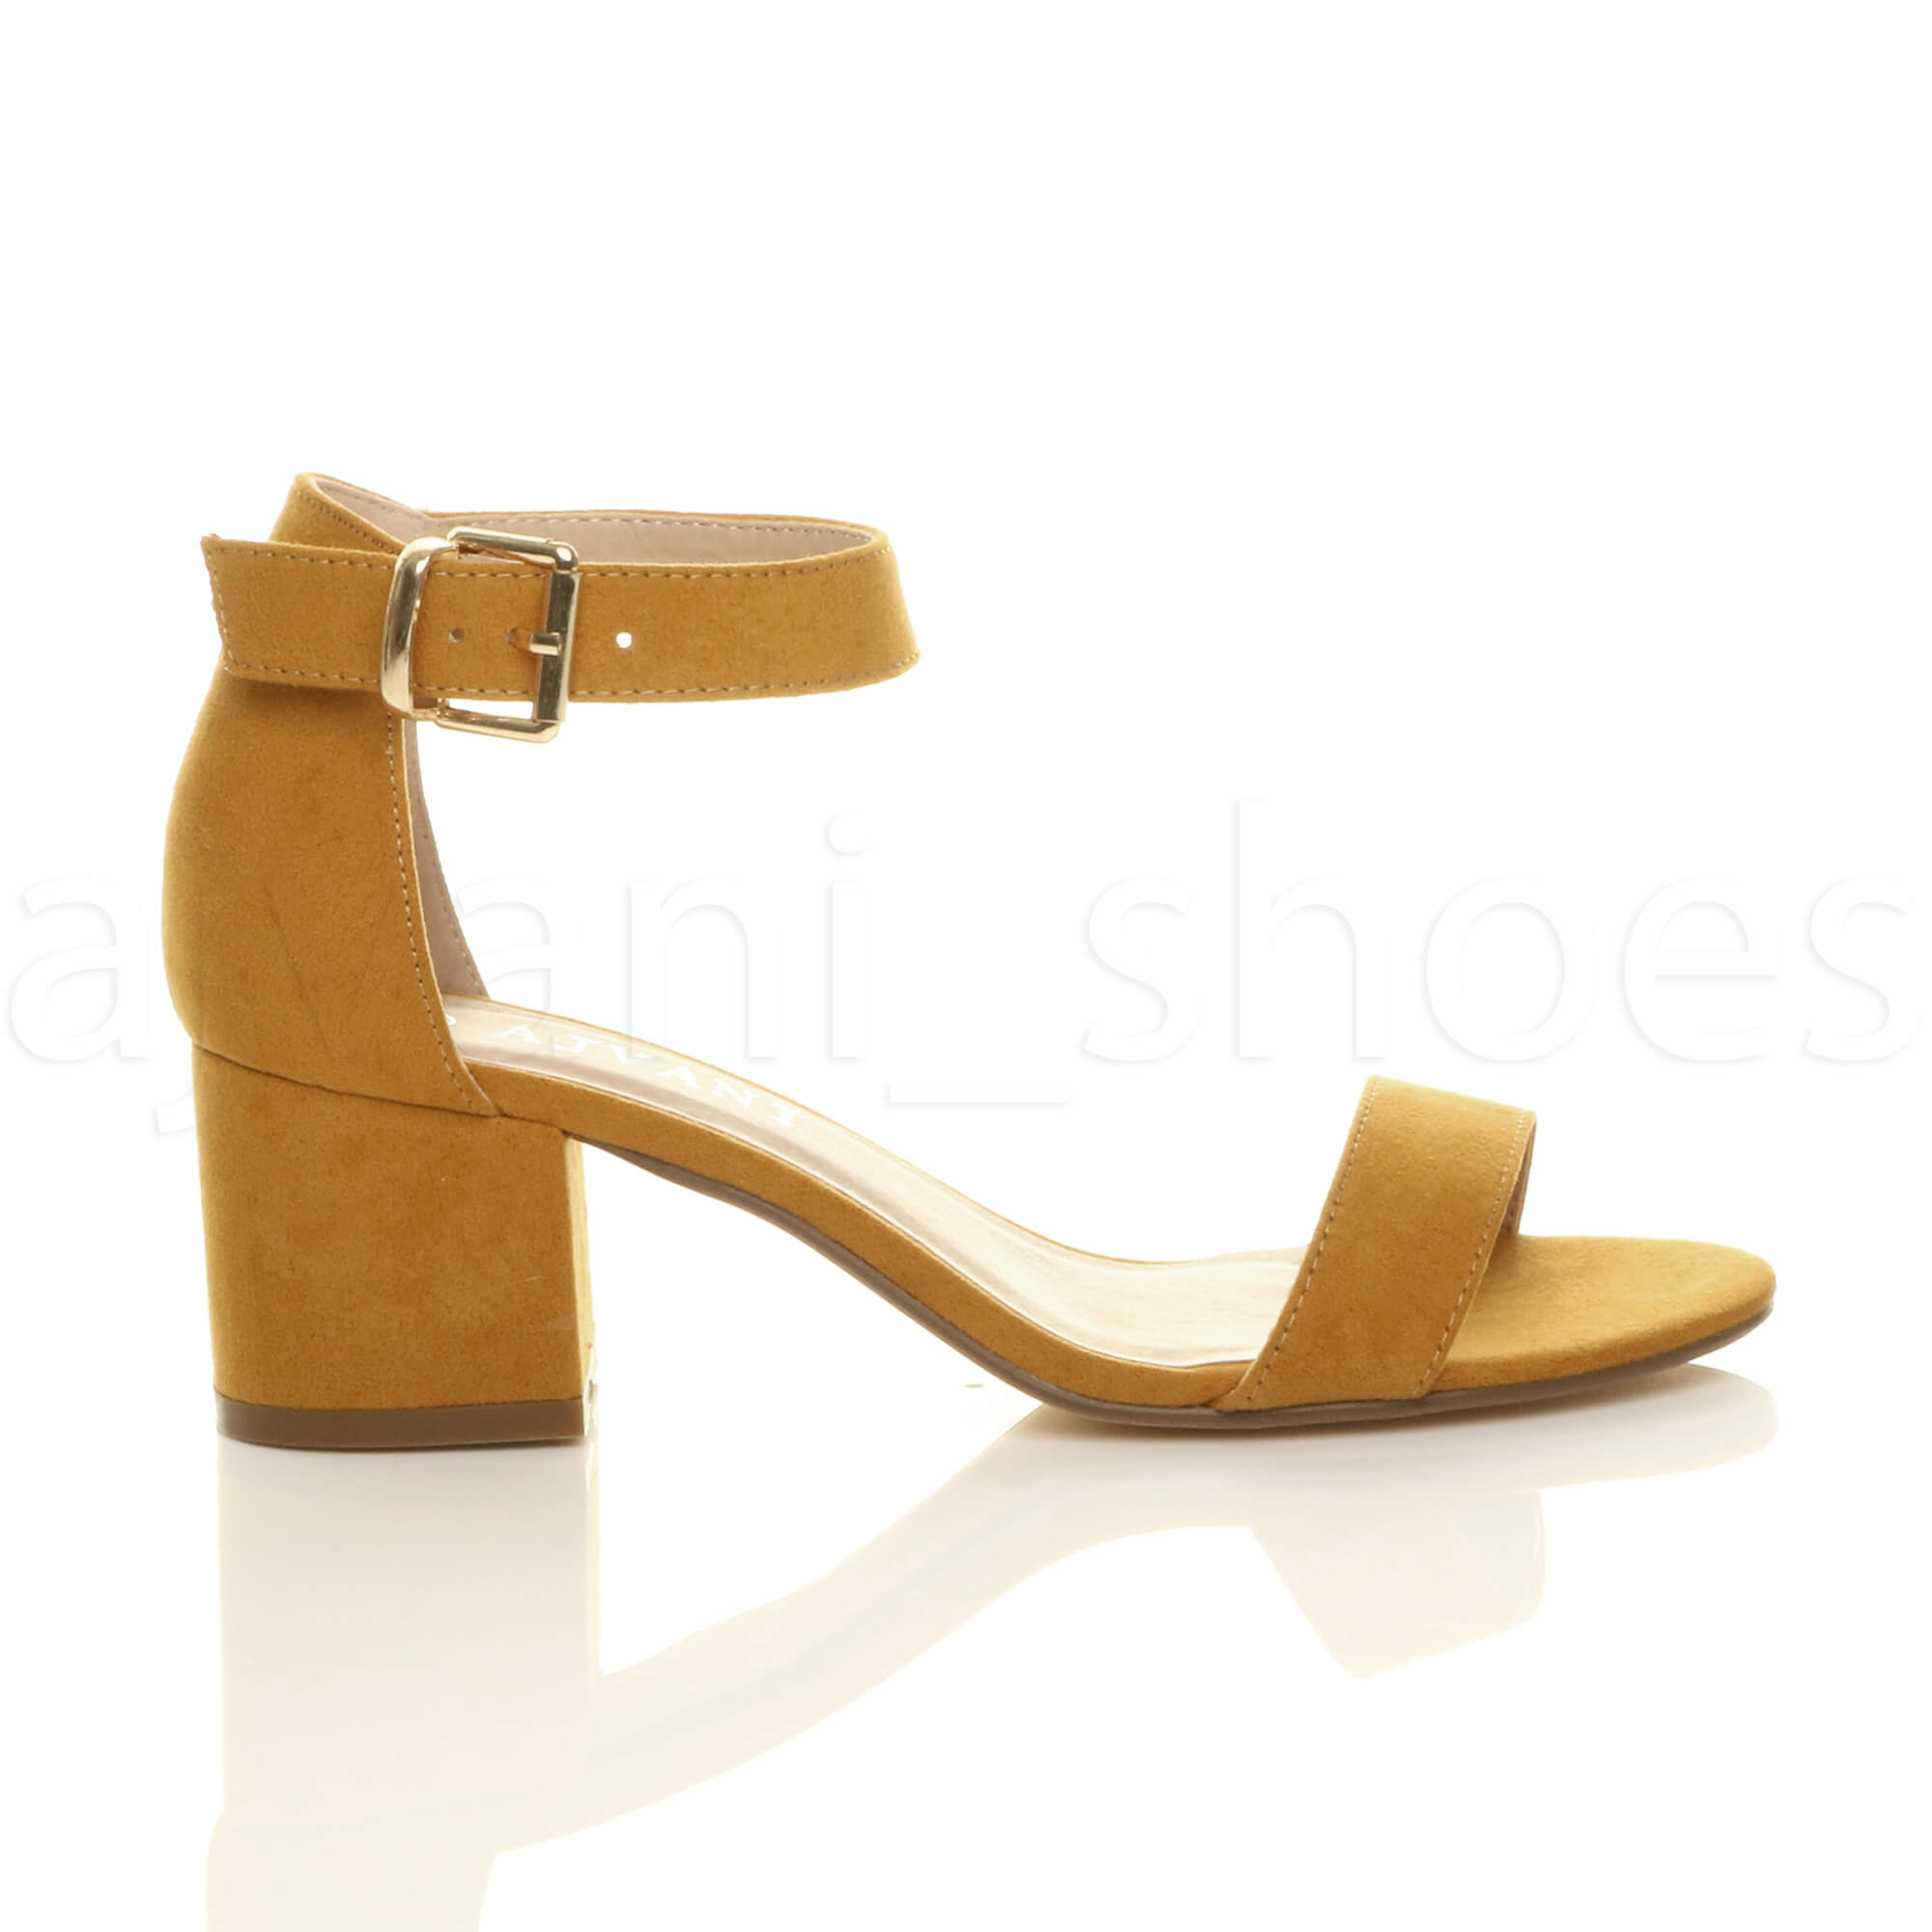 WOMENS-LADIES-LOW-MID-BLOCK-HEEL-ANKLE-STRAP-BUCKLE-PARTY-STRAPPY-SANDALS-SIZE thumbnail 106